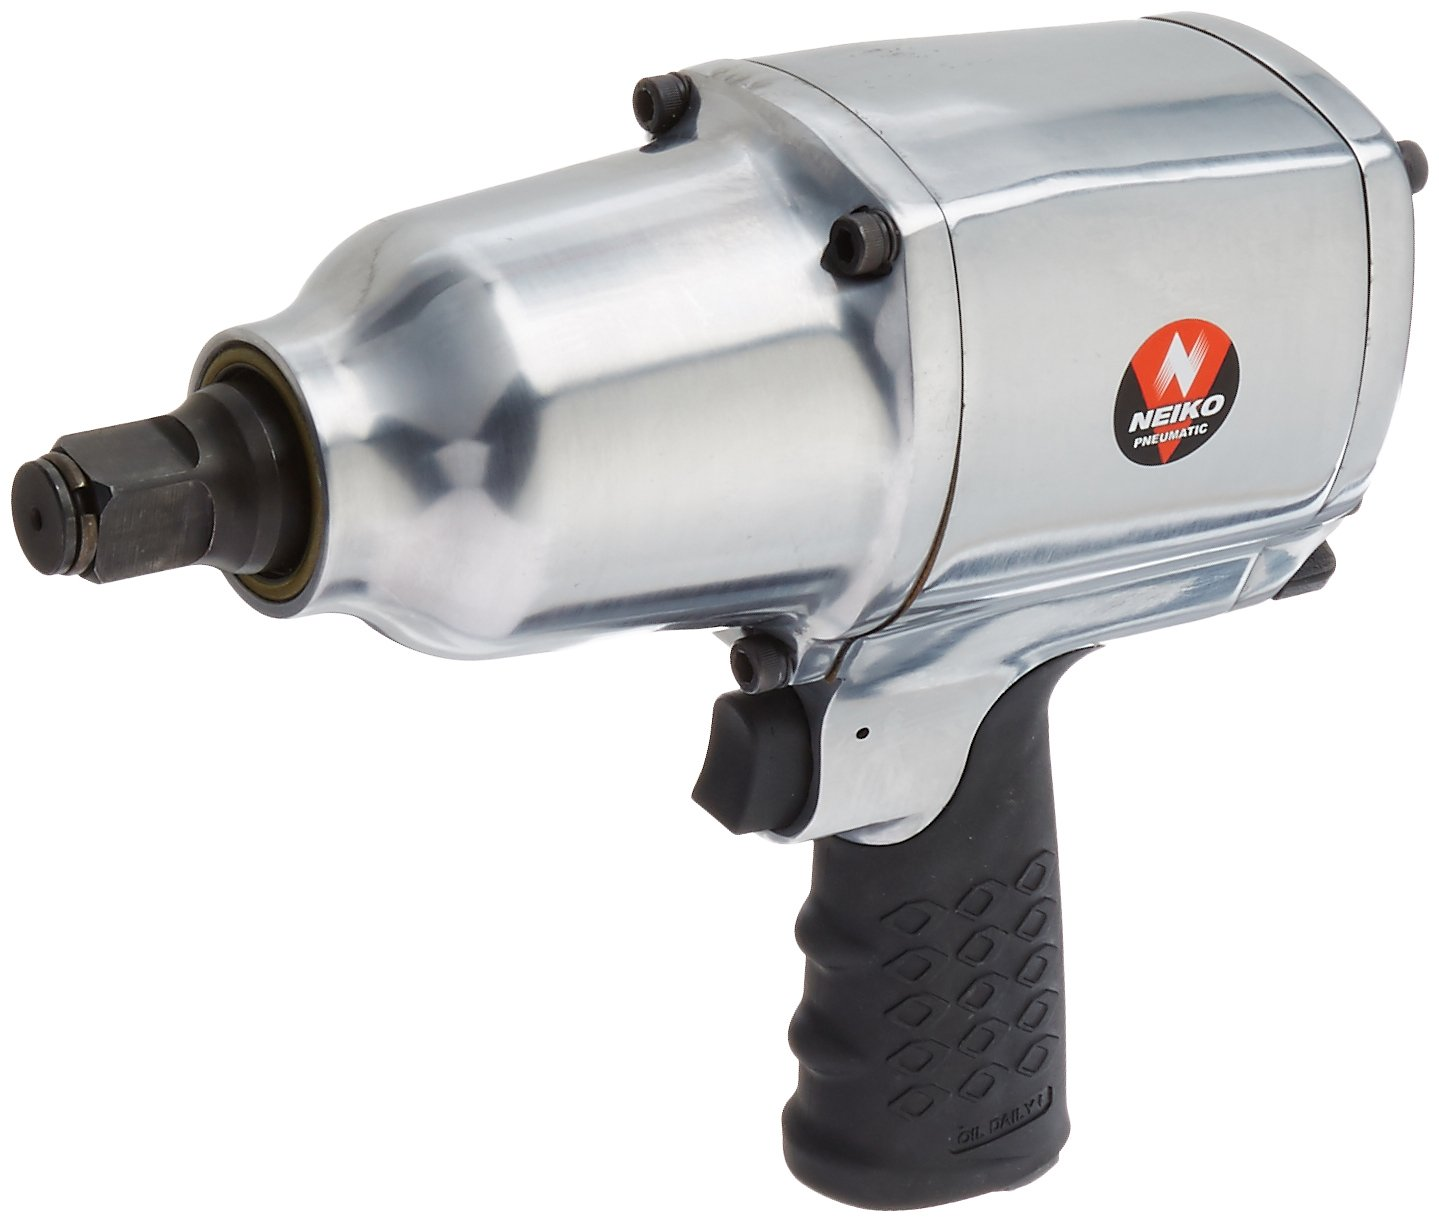 Neiko 31393A Pin Clutch Air Impact Wrench, Drive, 3 4 1000 Ft lb.